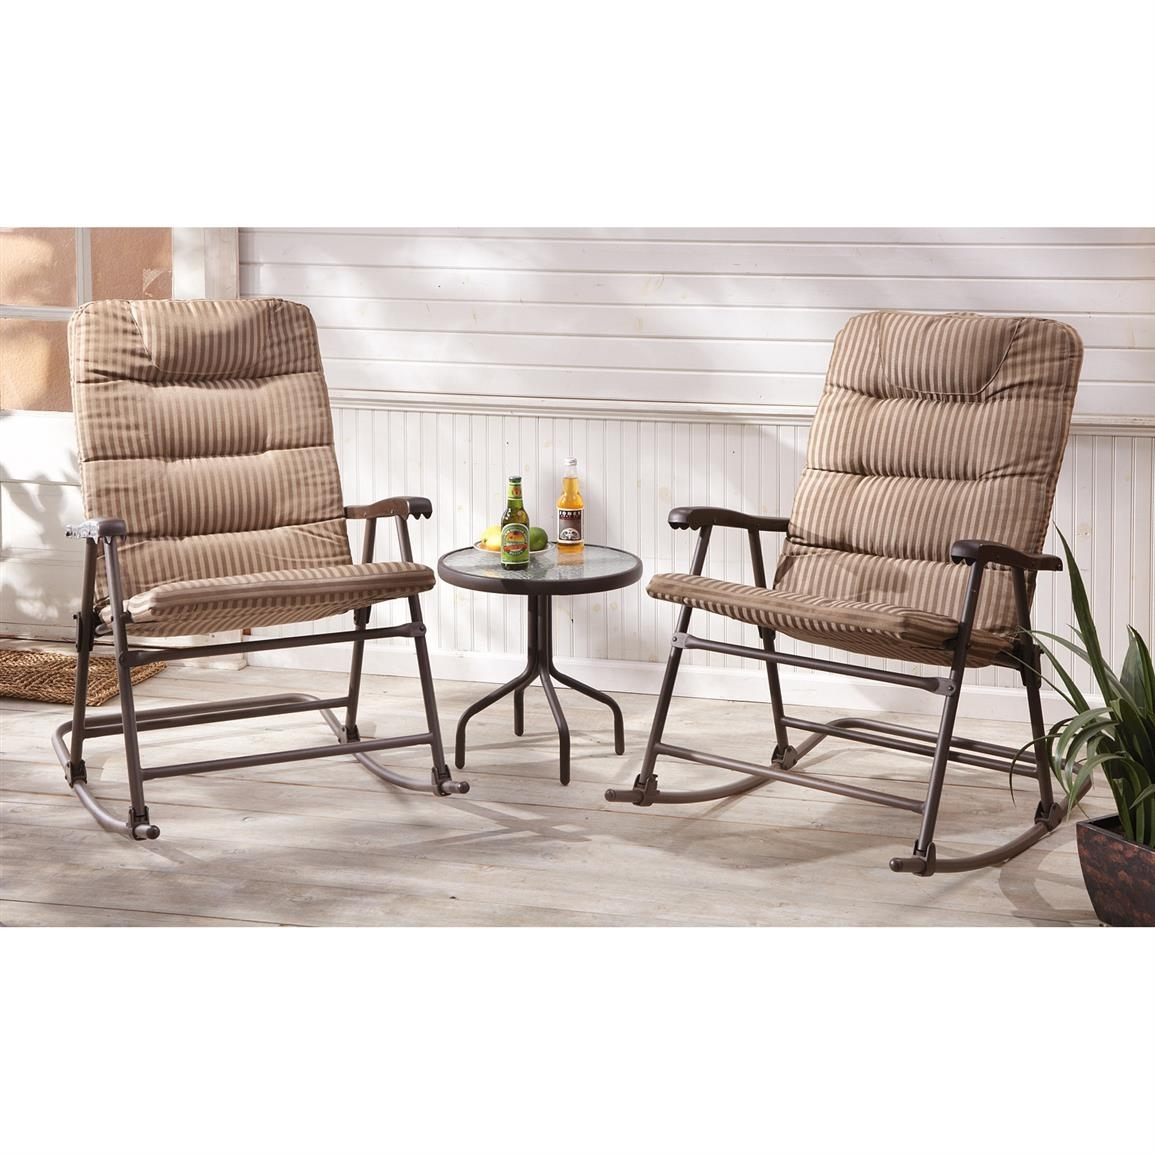 Castlecreek Padded Outdoor Rocking Chair Set, 3 Piece – 625233 With Outside Rocking Chair Sets (View 2 of 15)